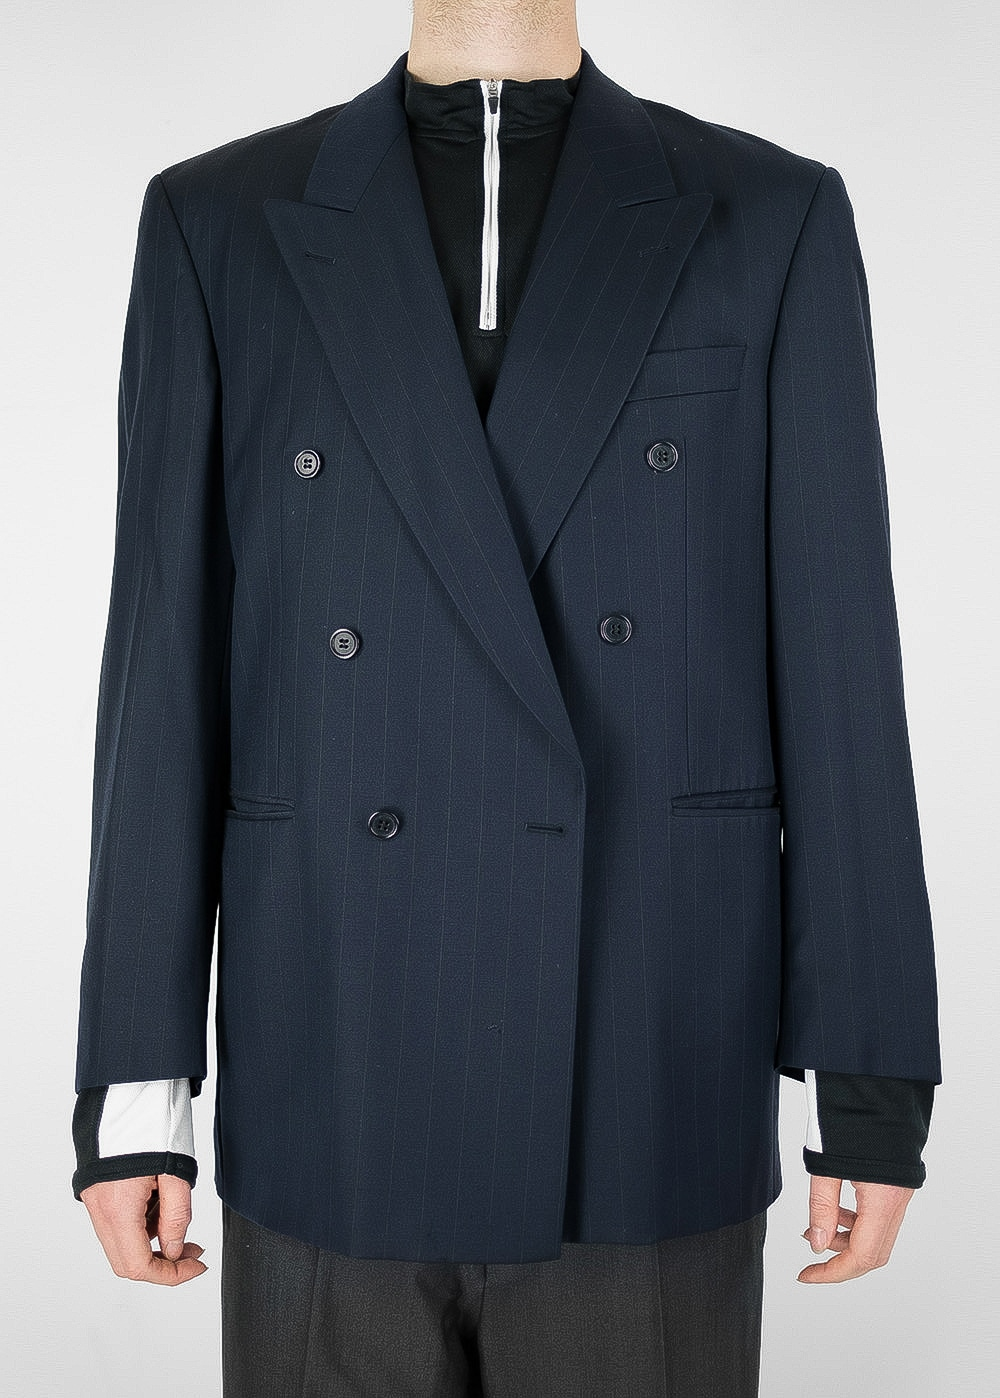 Captain Navy Jacket 2